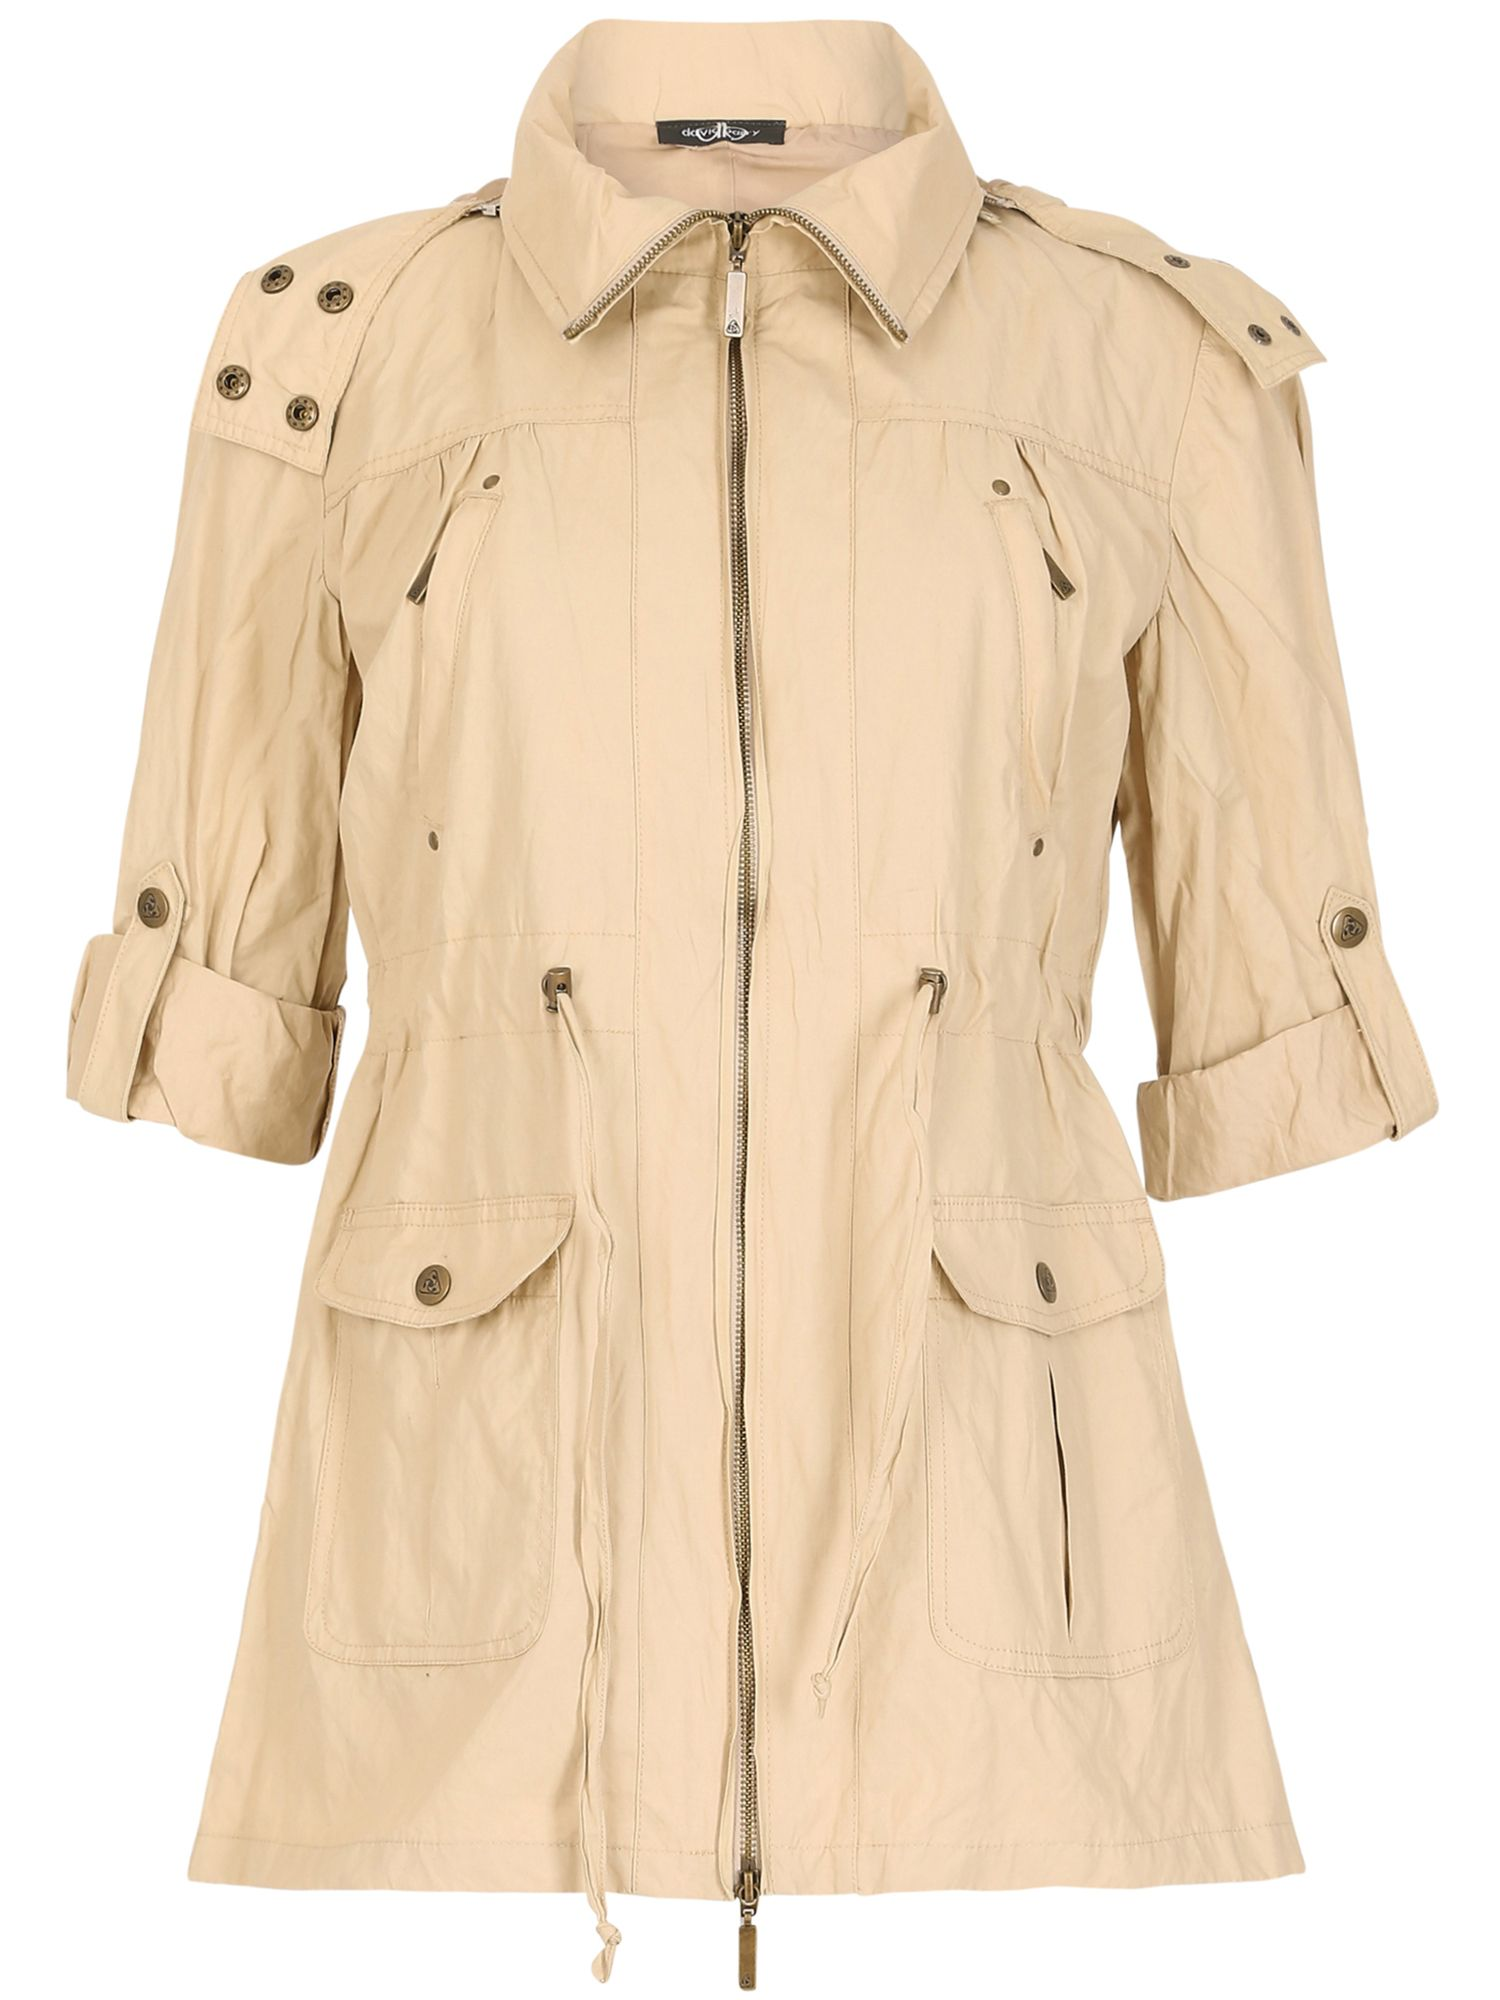 David Barry David Barry Light Weight Drawstring Waisted Jacket, Cream